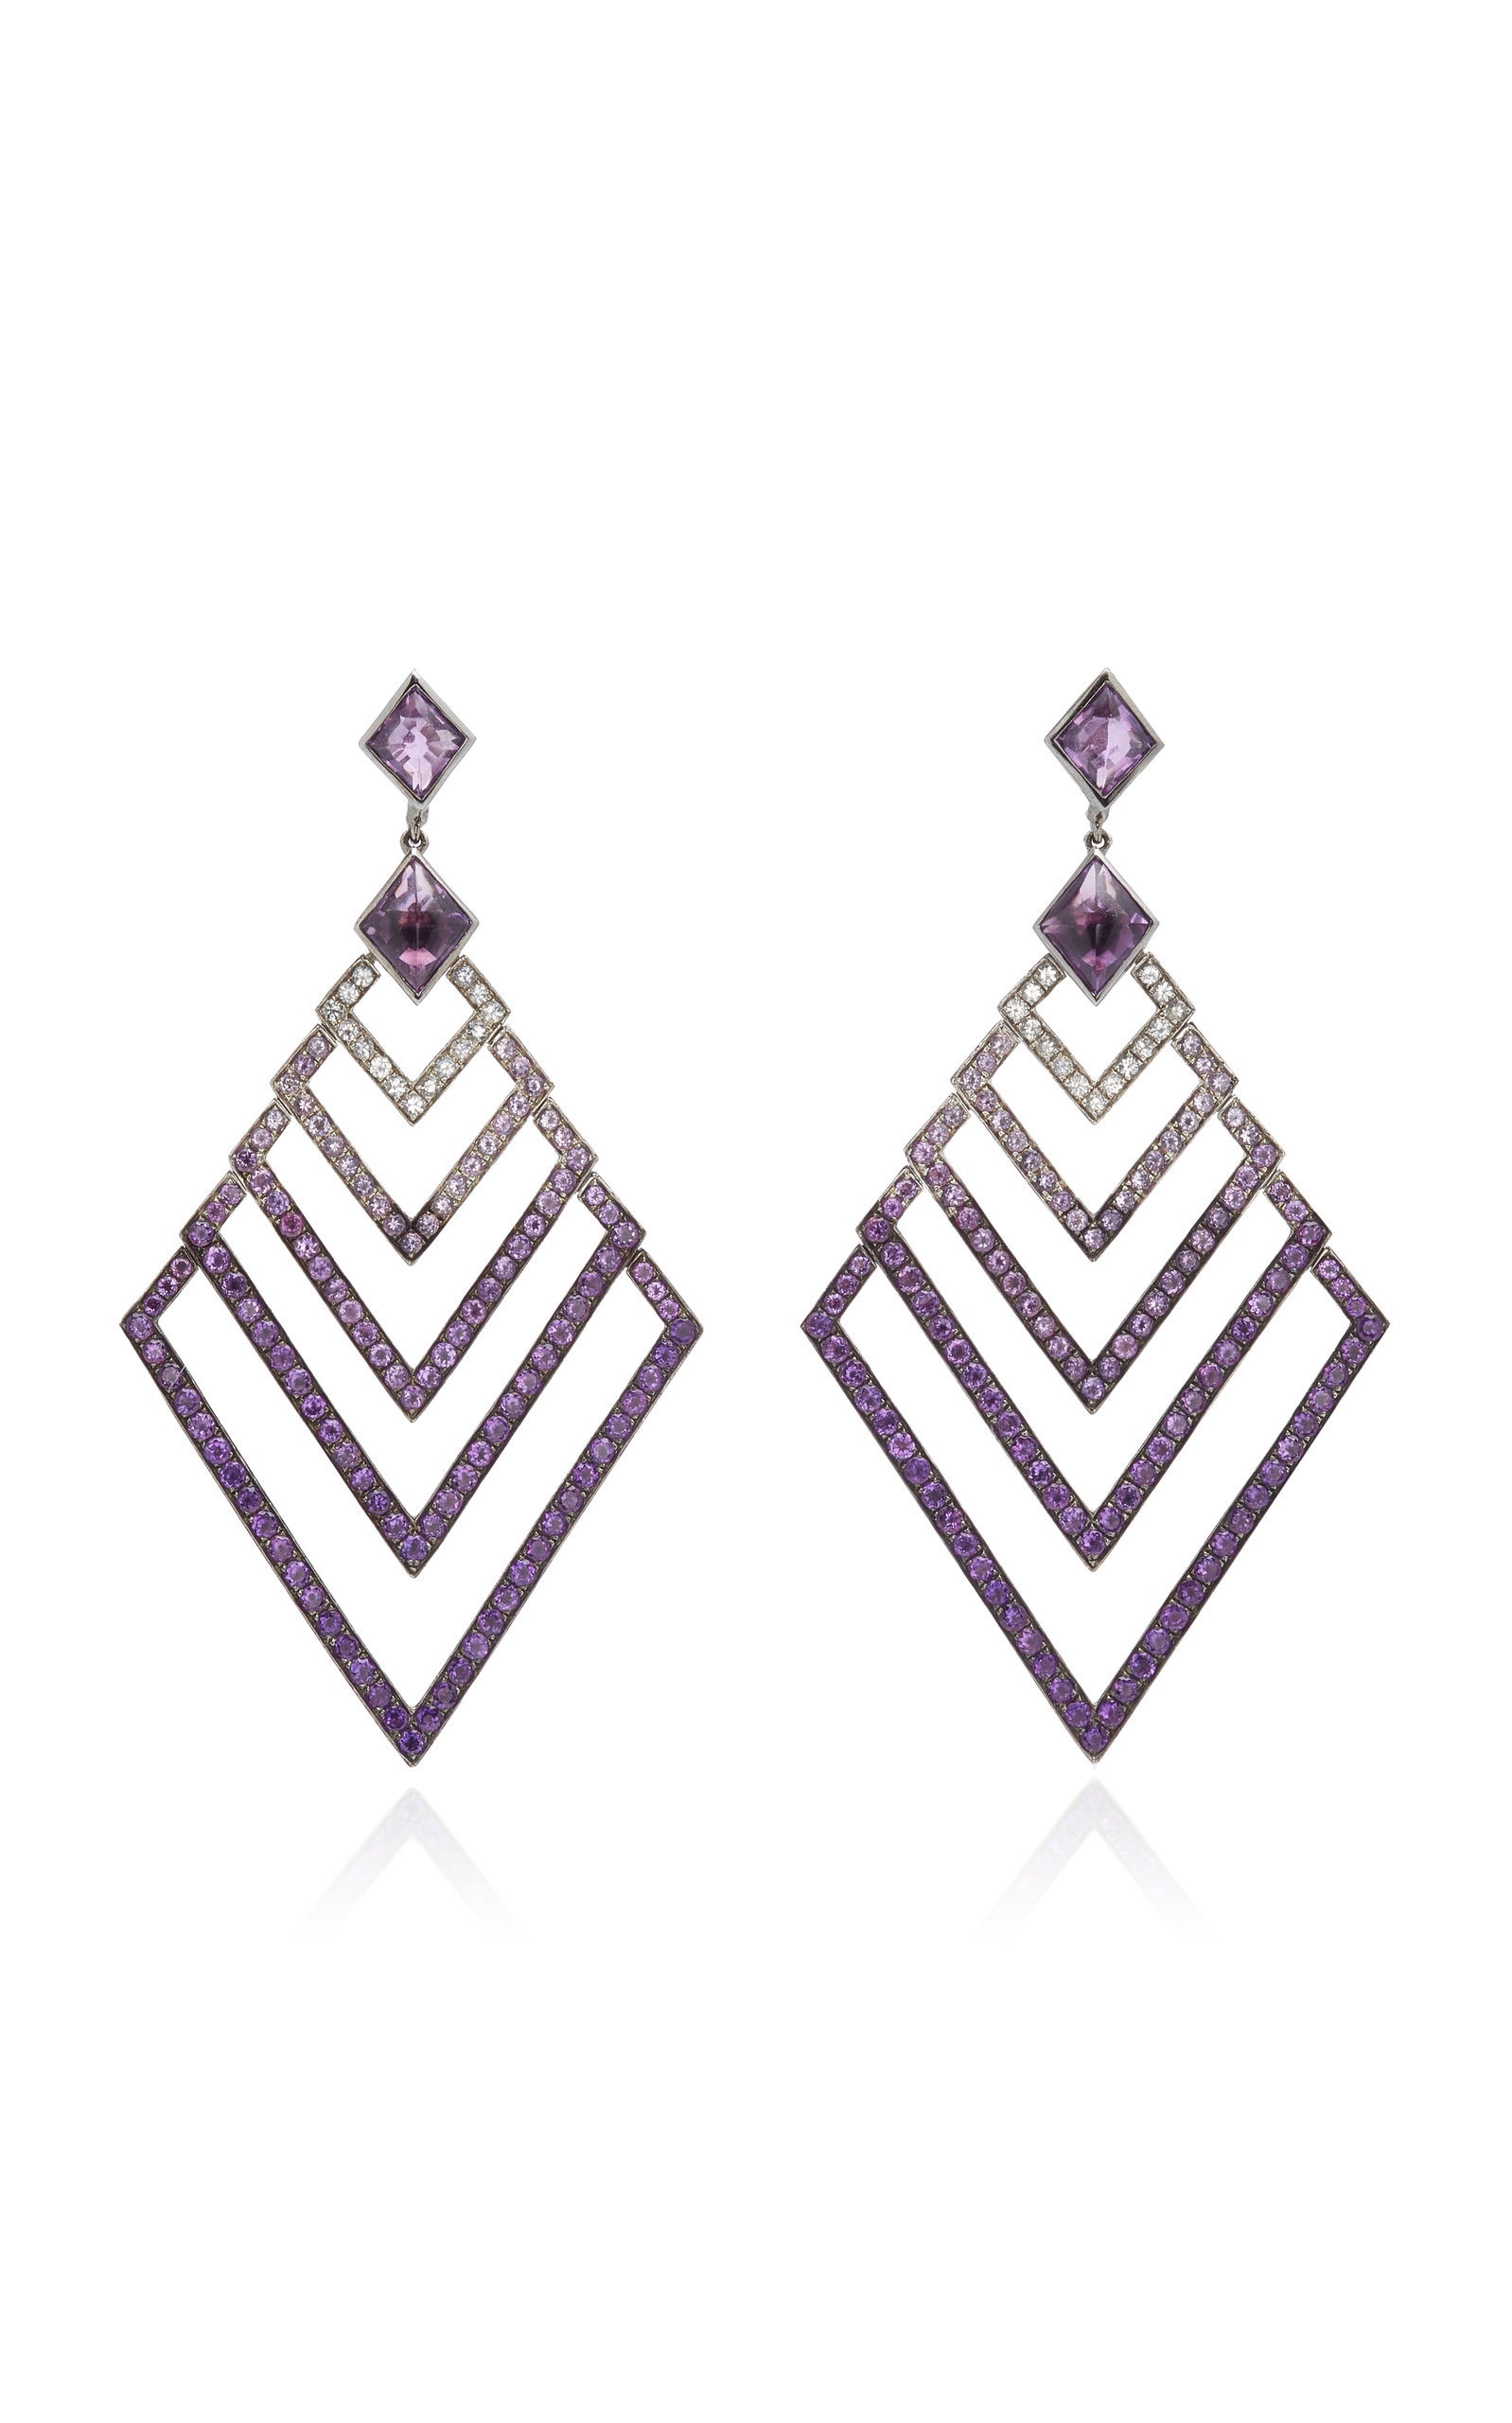 Women's Black Rhodium-Plated Silver; Amethyst And Sapphire Earrings